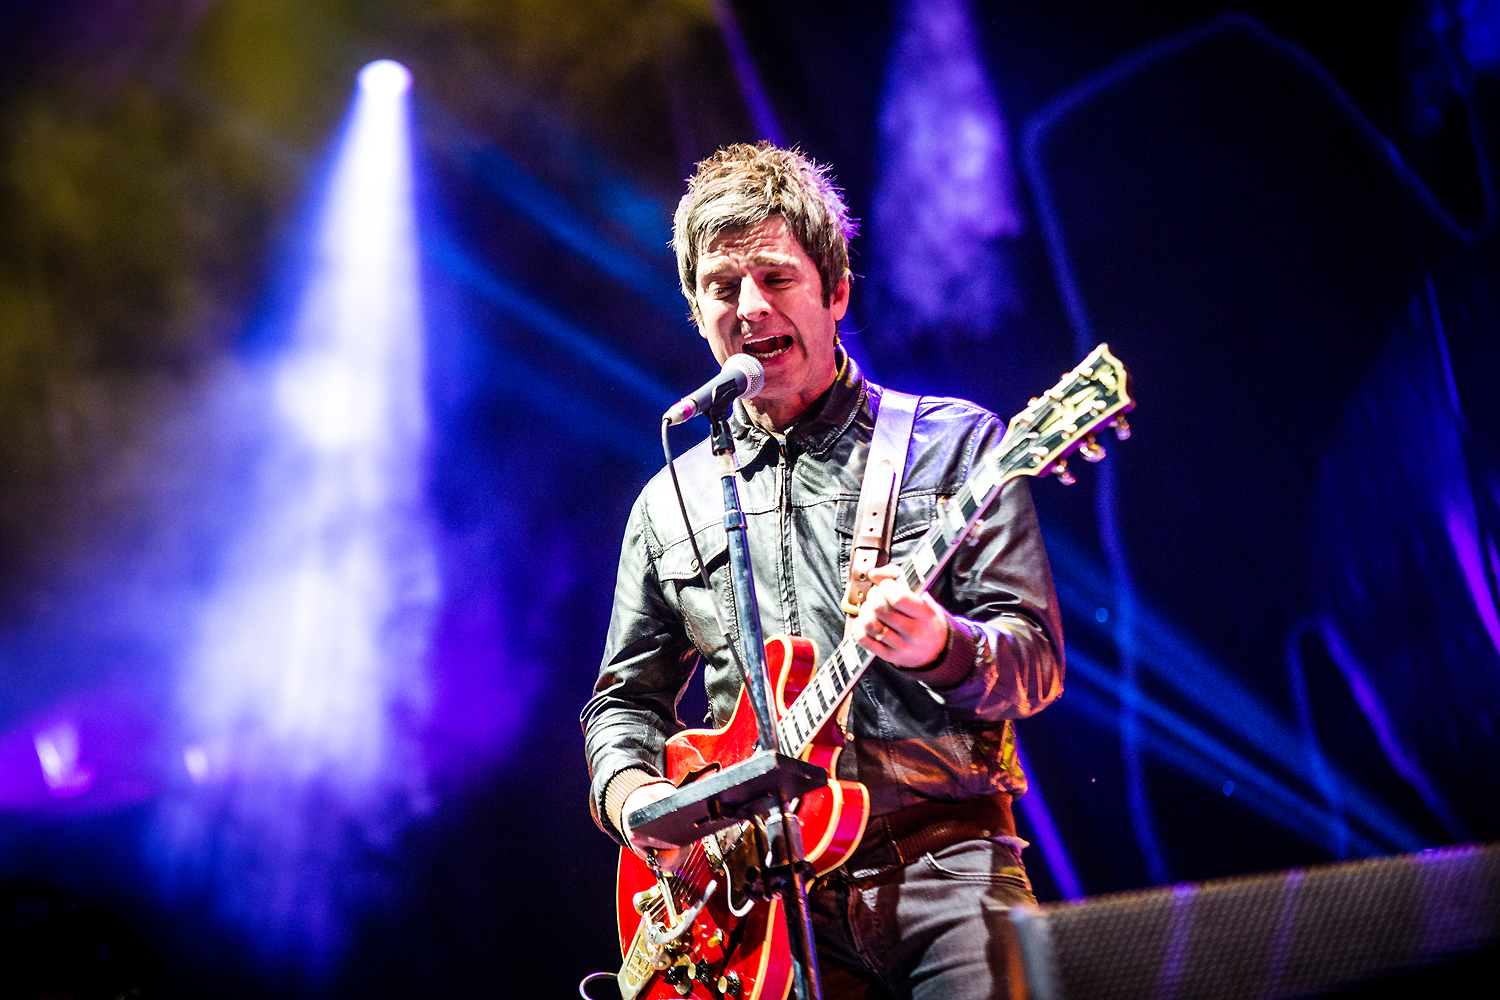 BKS 695 - Noel Gallagher's High Flying Birds